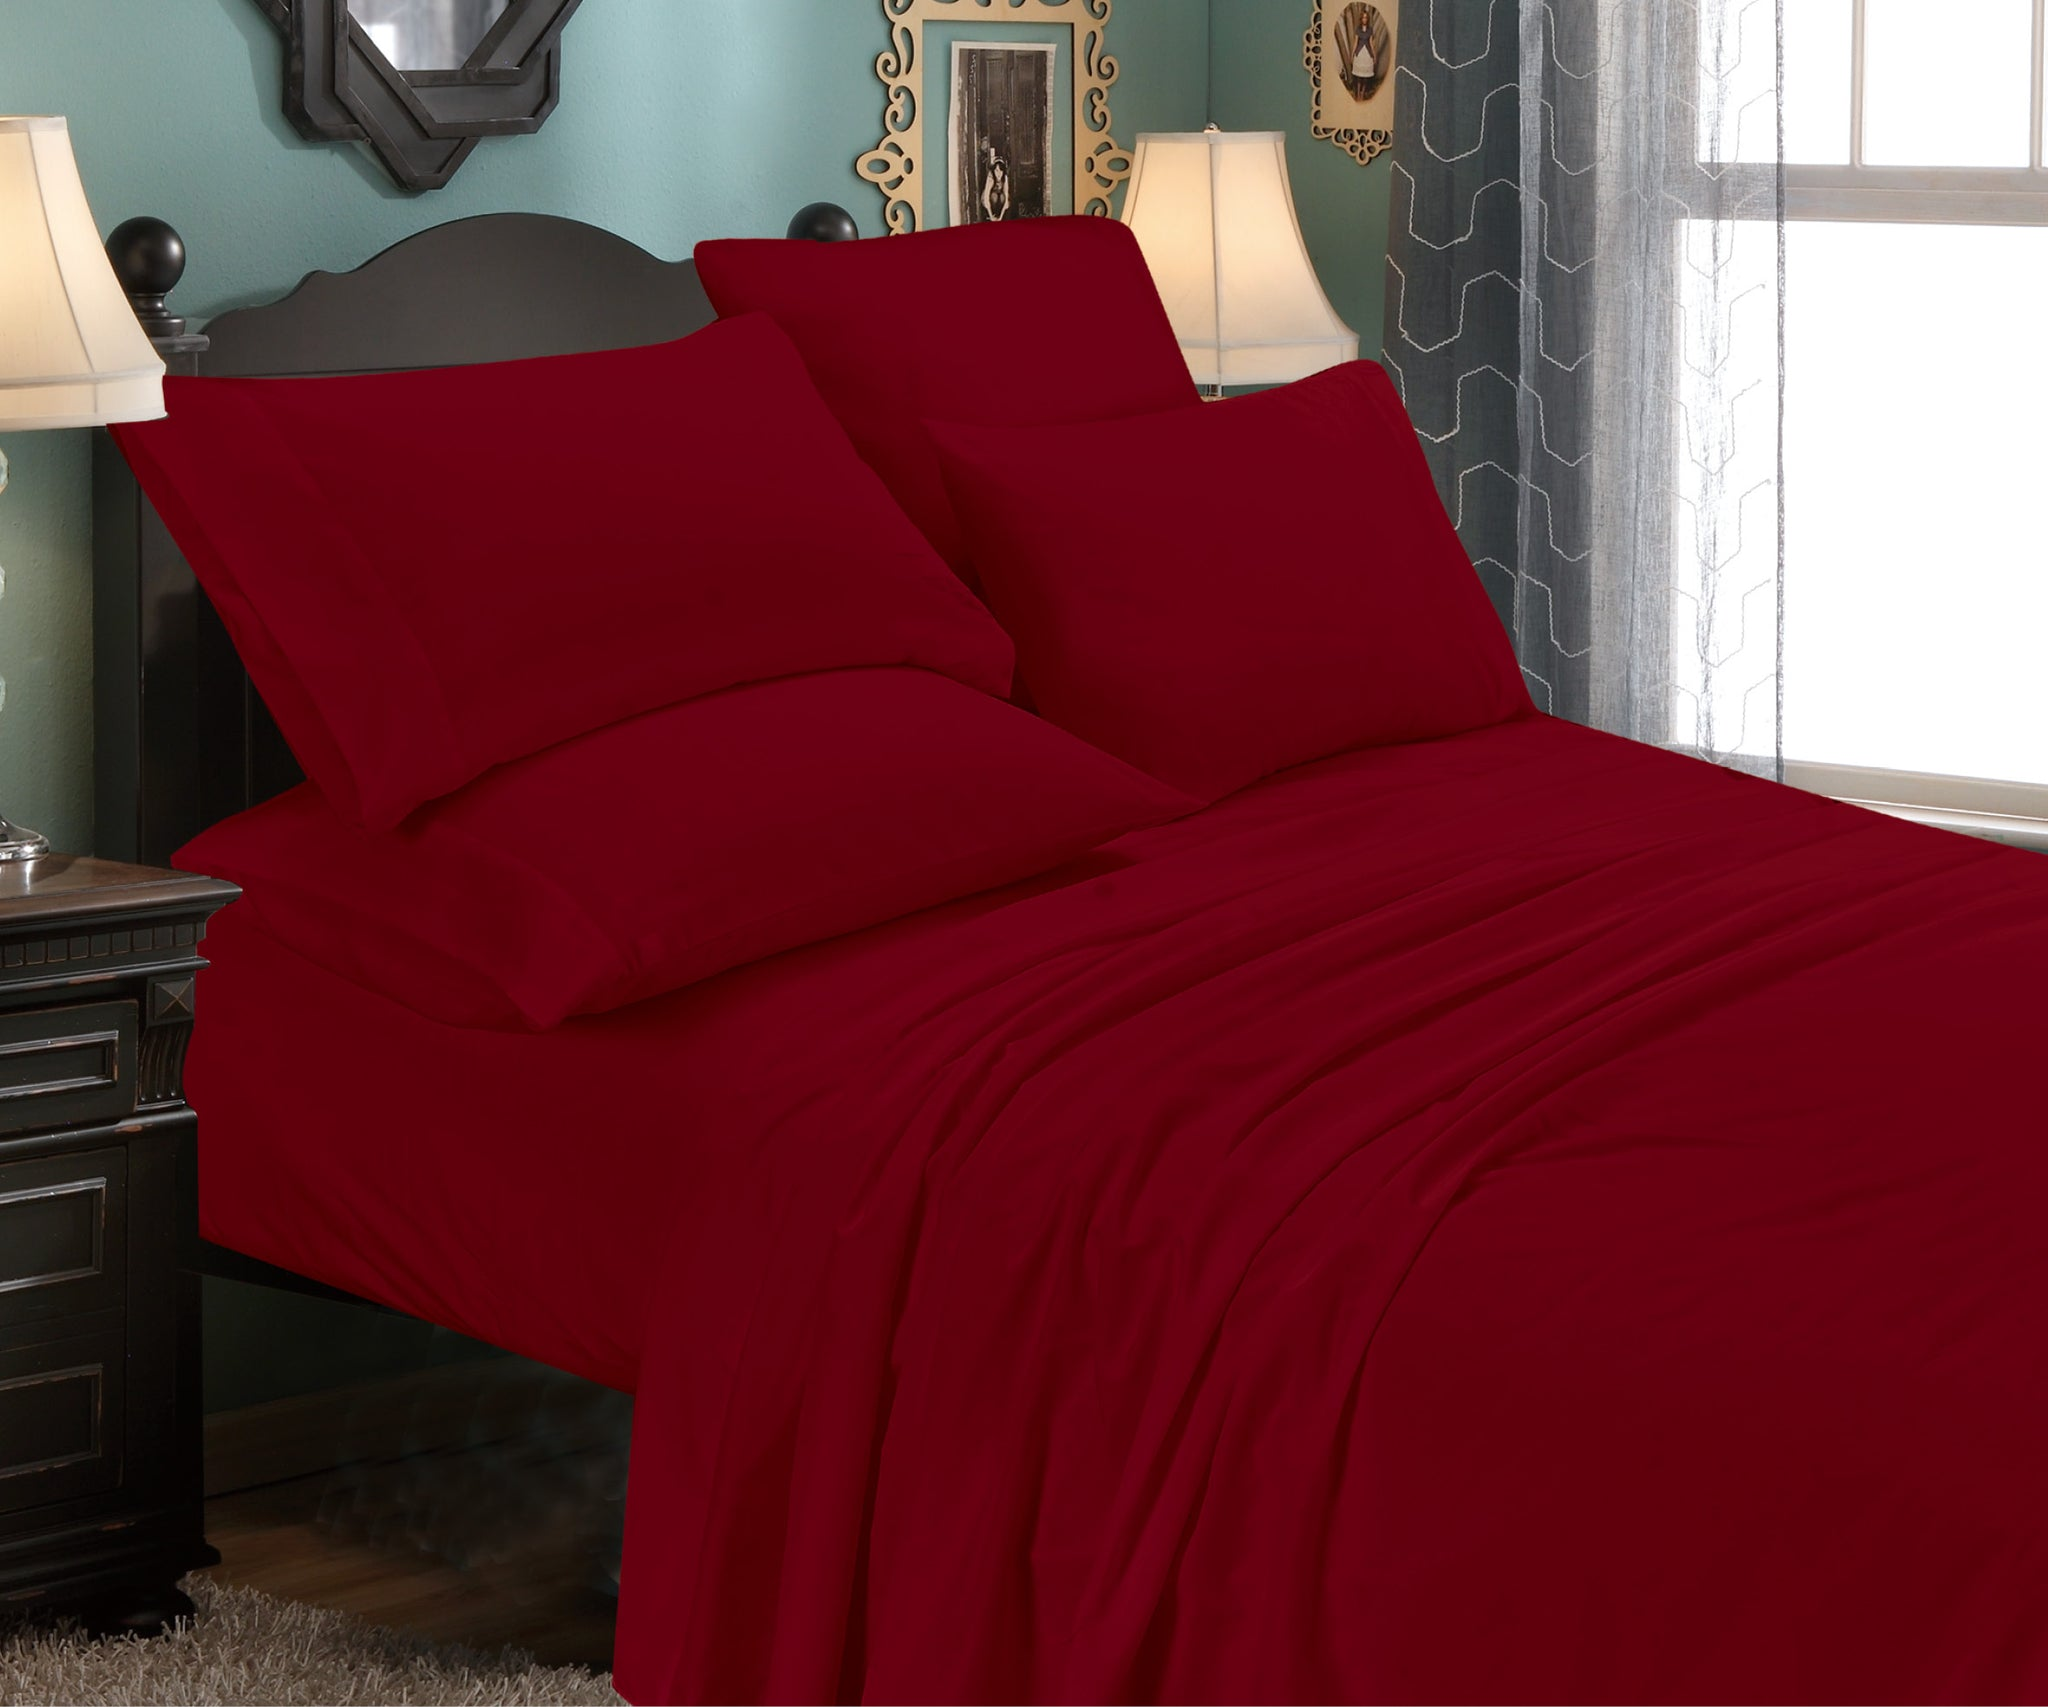 6-Piece: Premium Quality Super Soft Bed Sheet Set